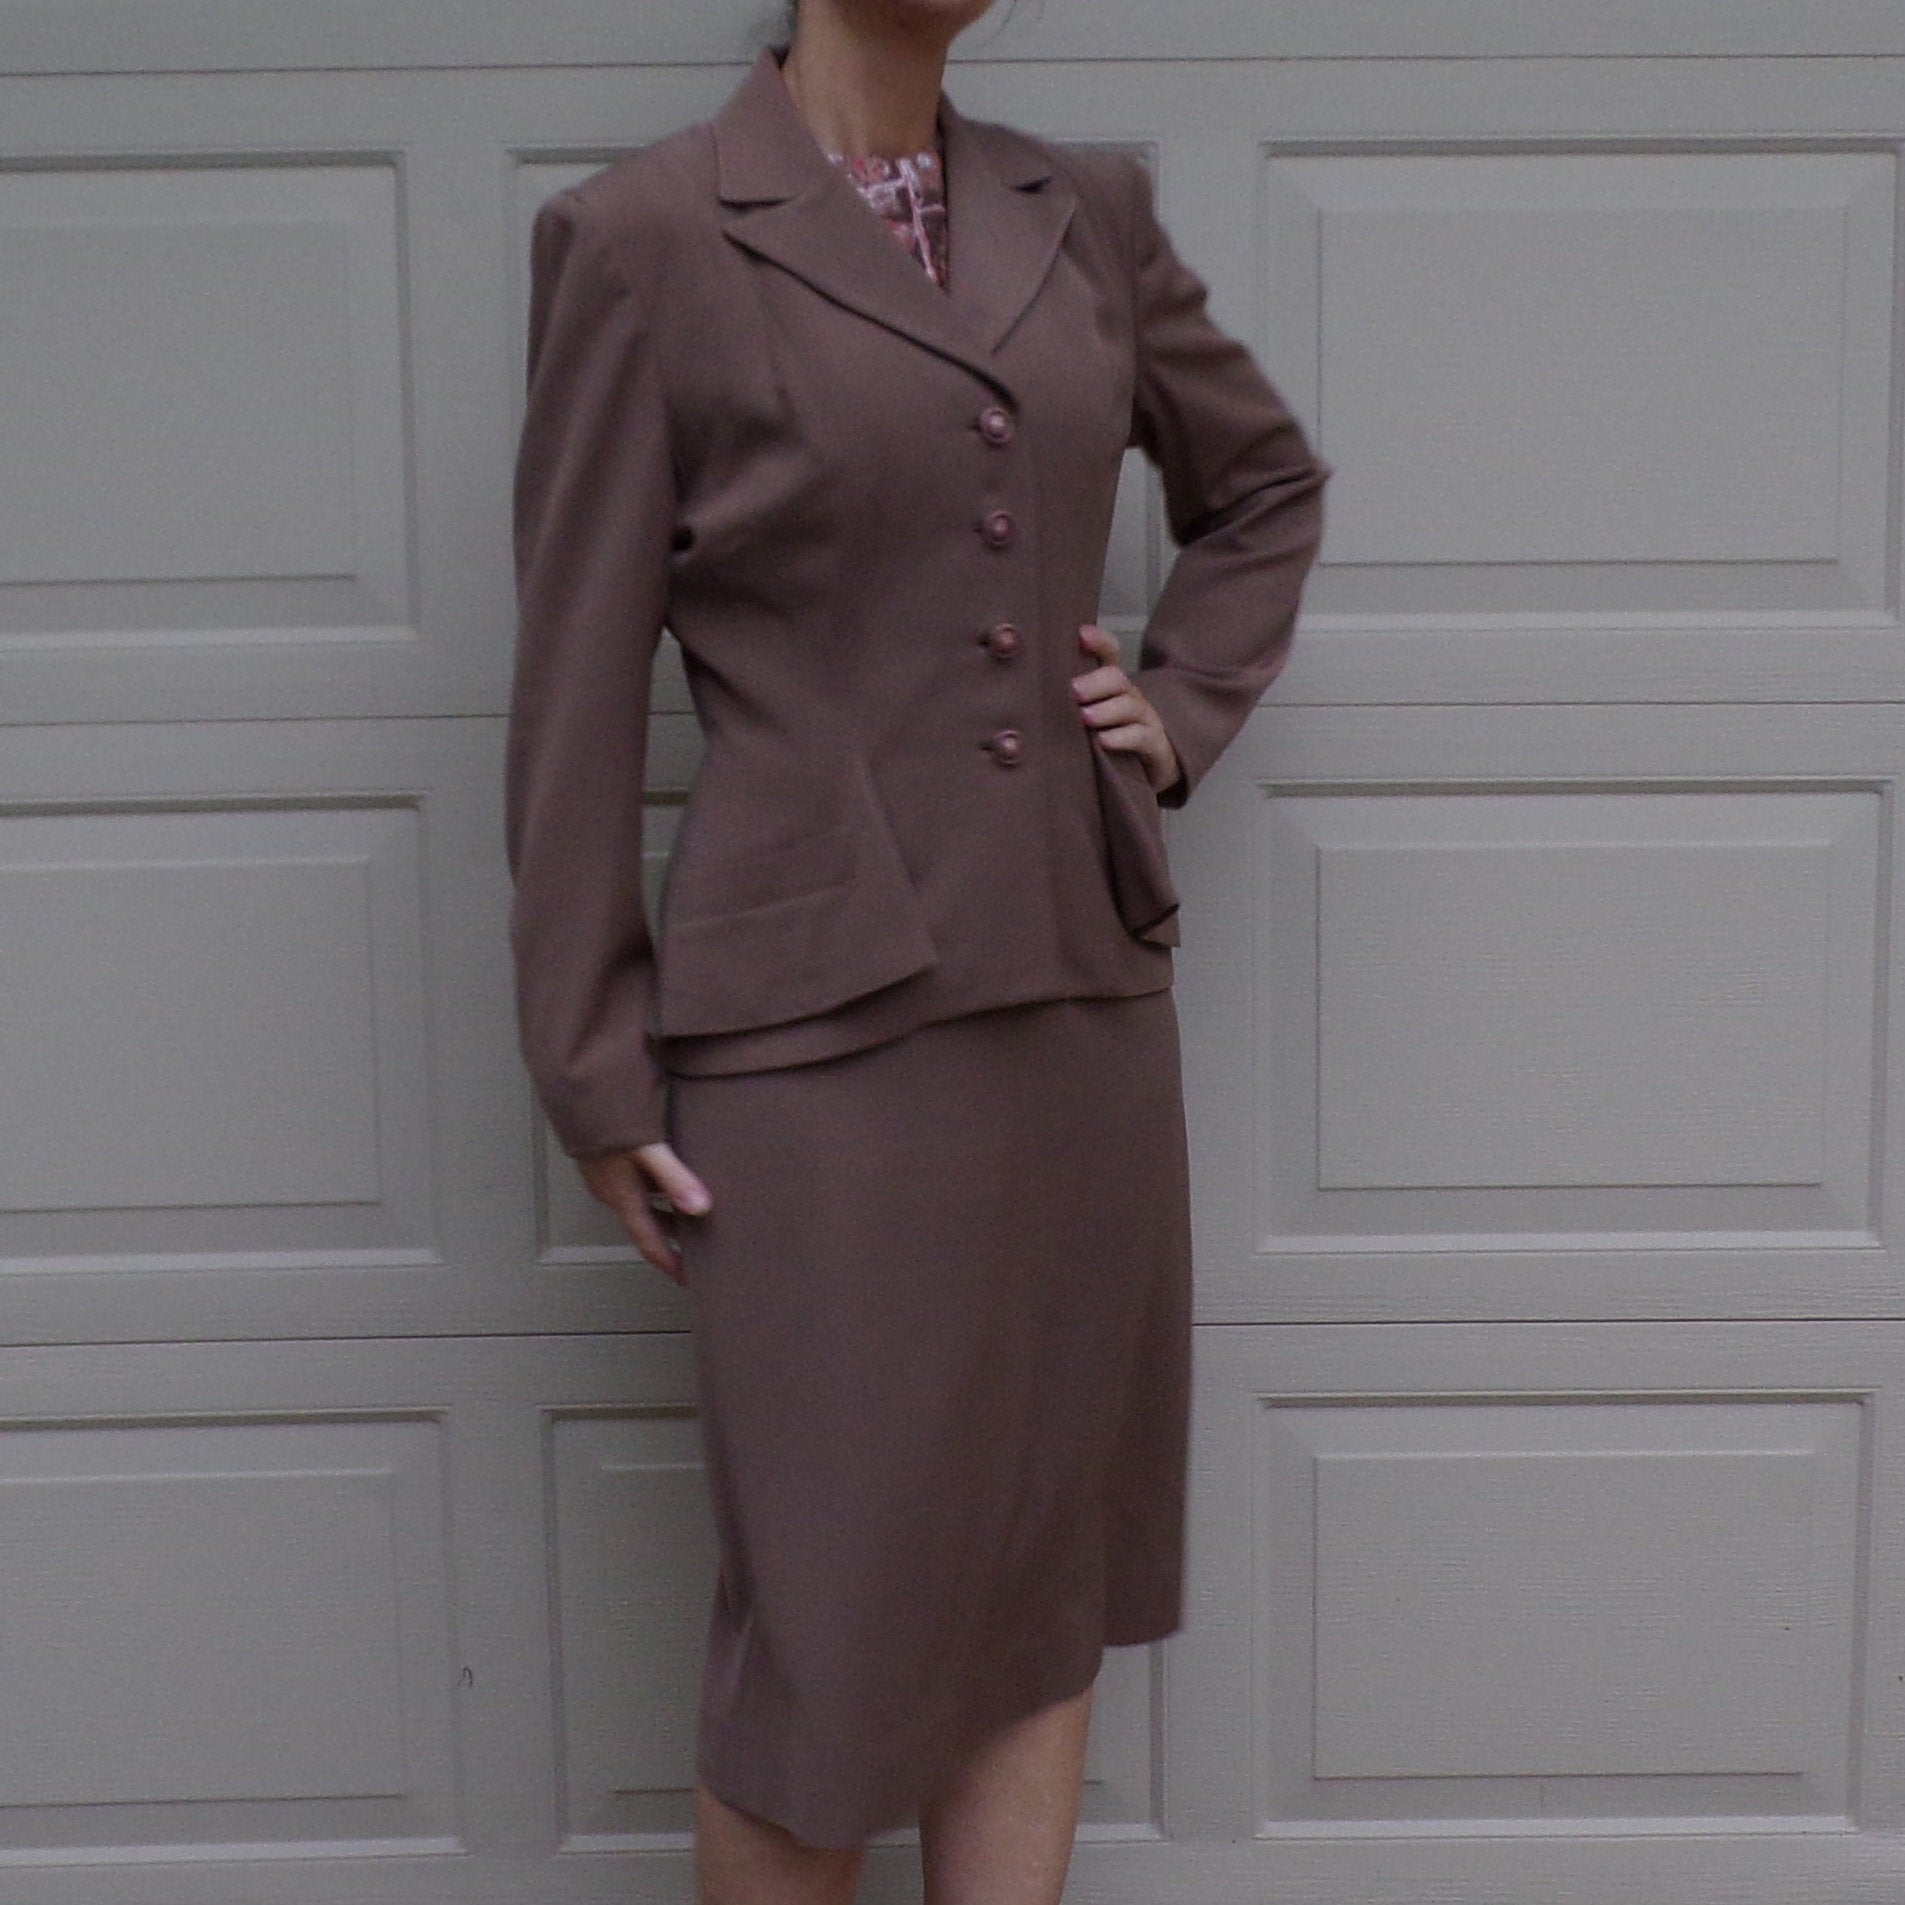 CAFE LATTE SUIT 1940's skirt set 40's tailored jacket S M (C9)